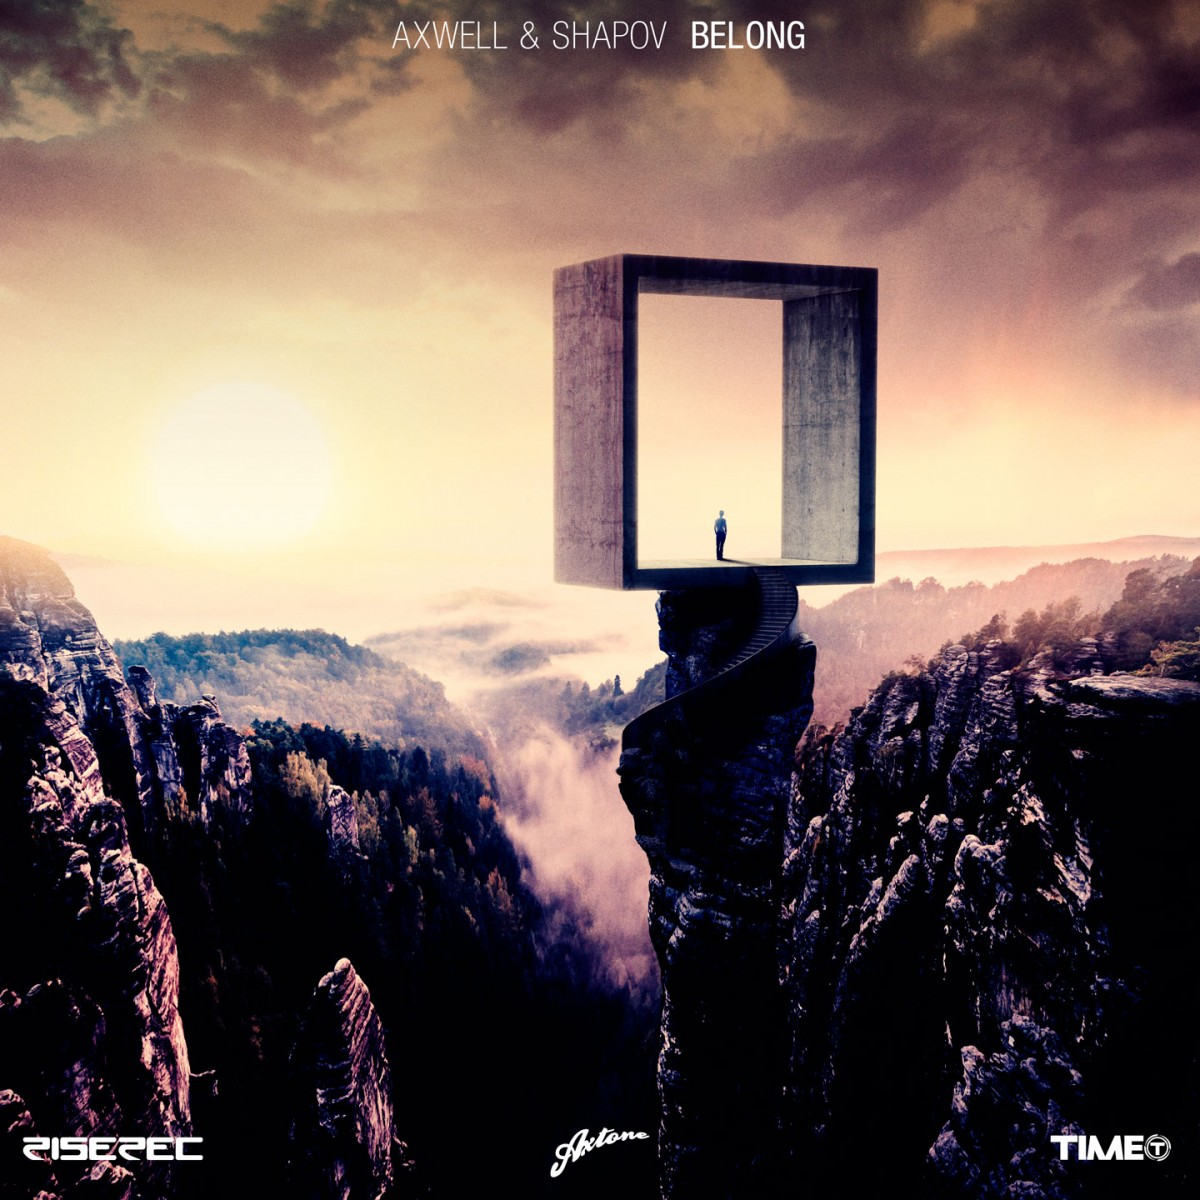 AXWELL & SHAPOV - BELONG